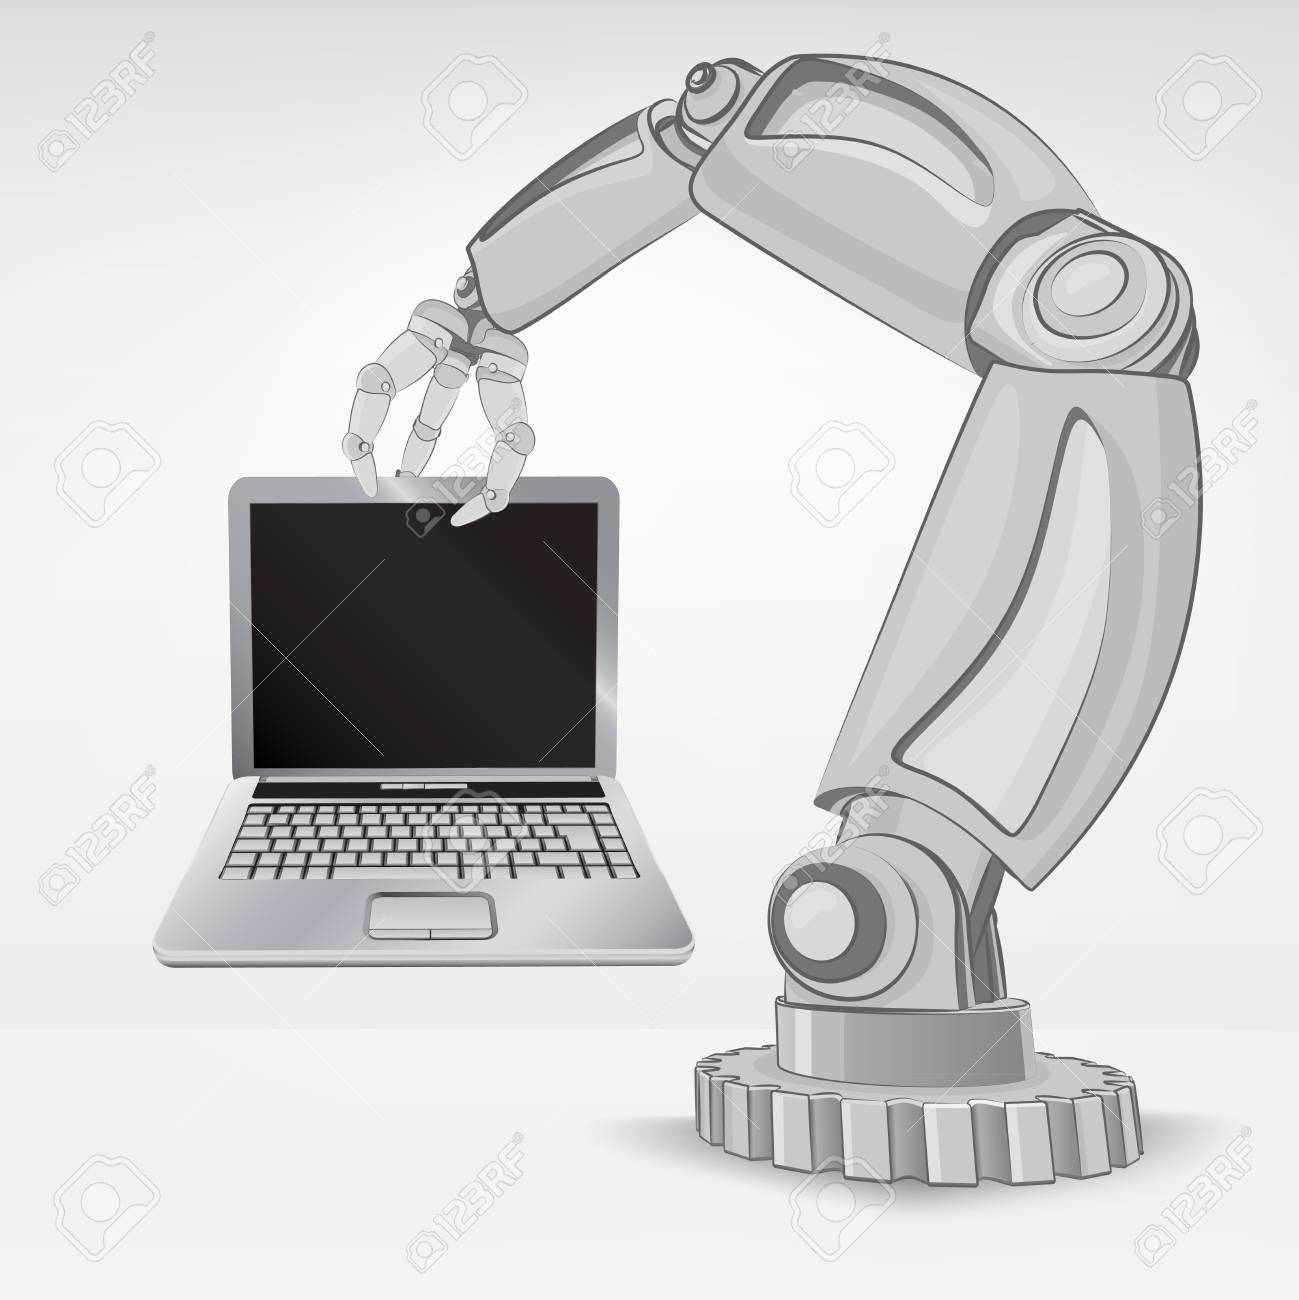 new laptop hold by automated robotic hand vector illustration Stock Vector - 26640962